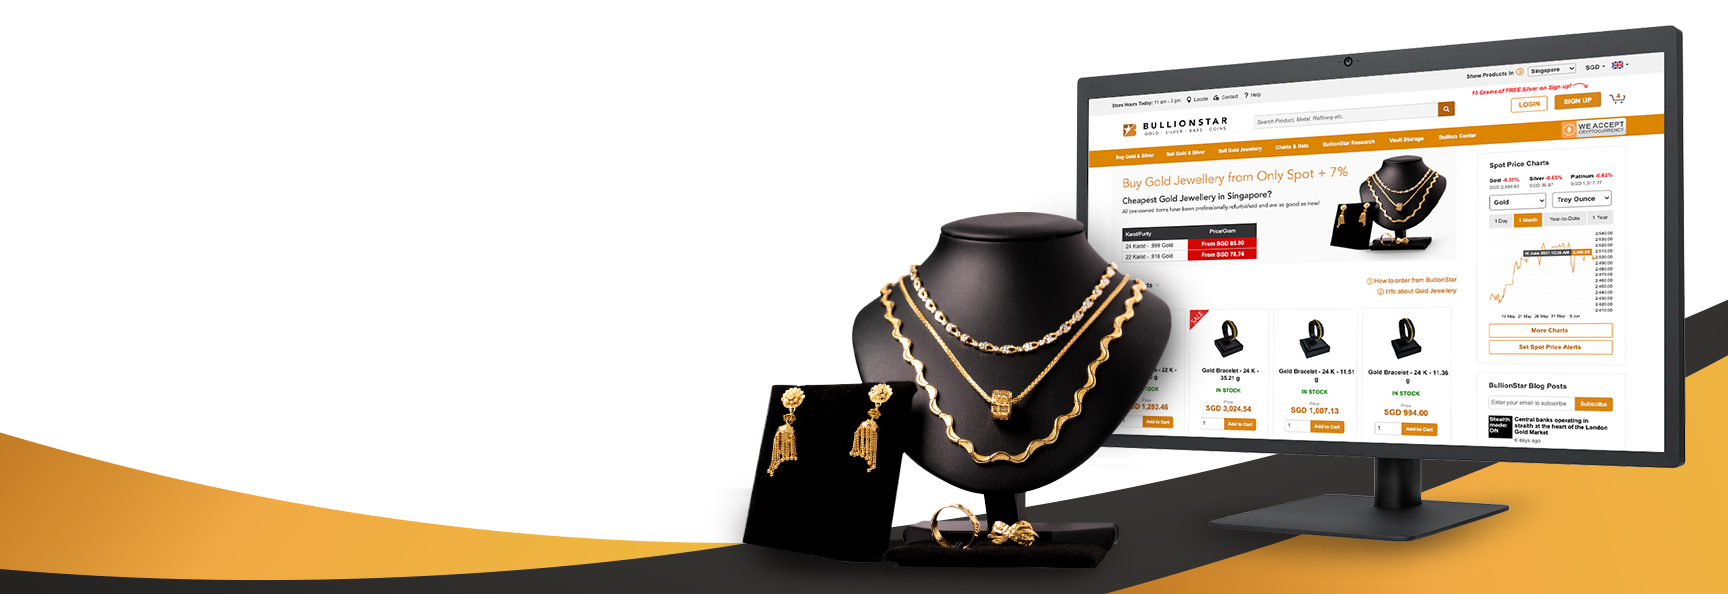 Gold Jewellery on Sale Now